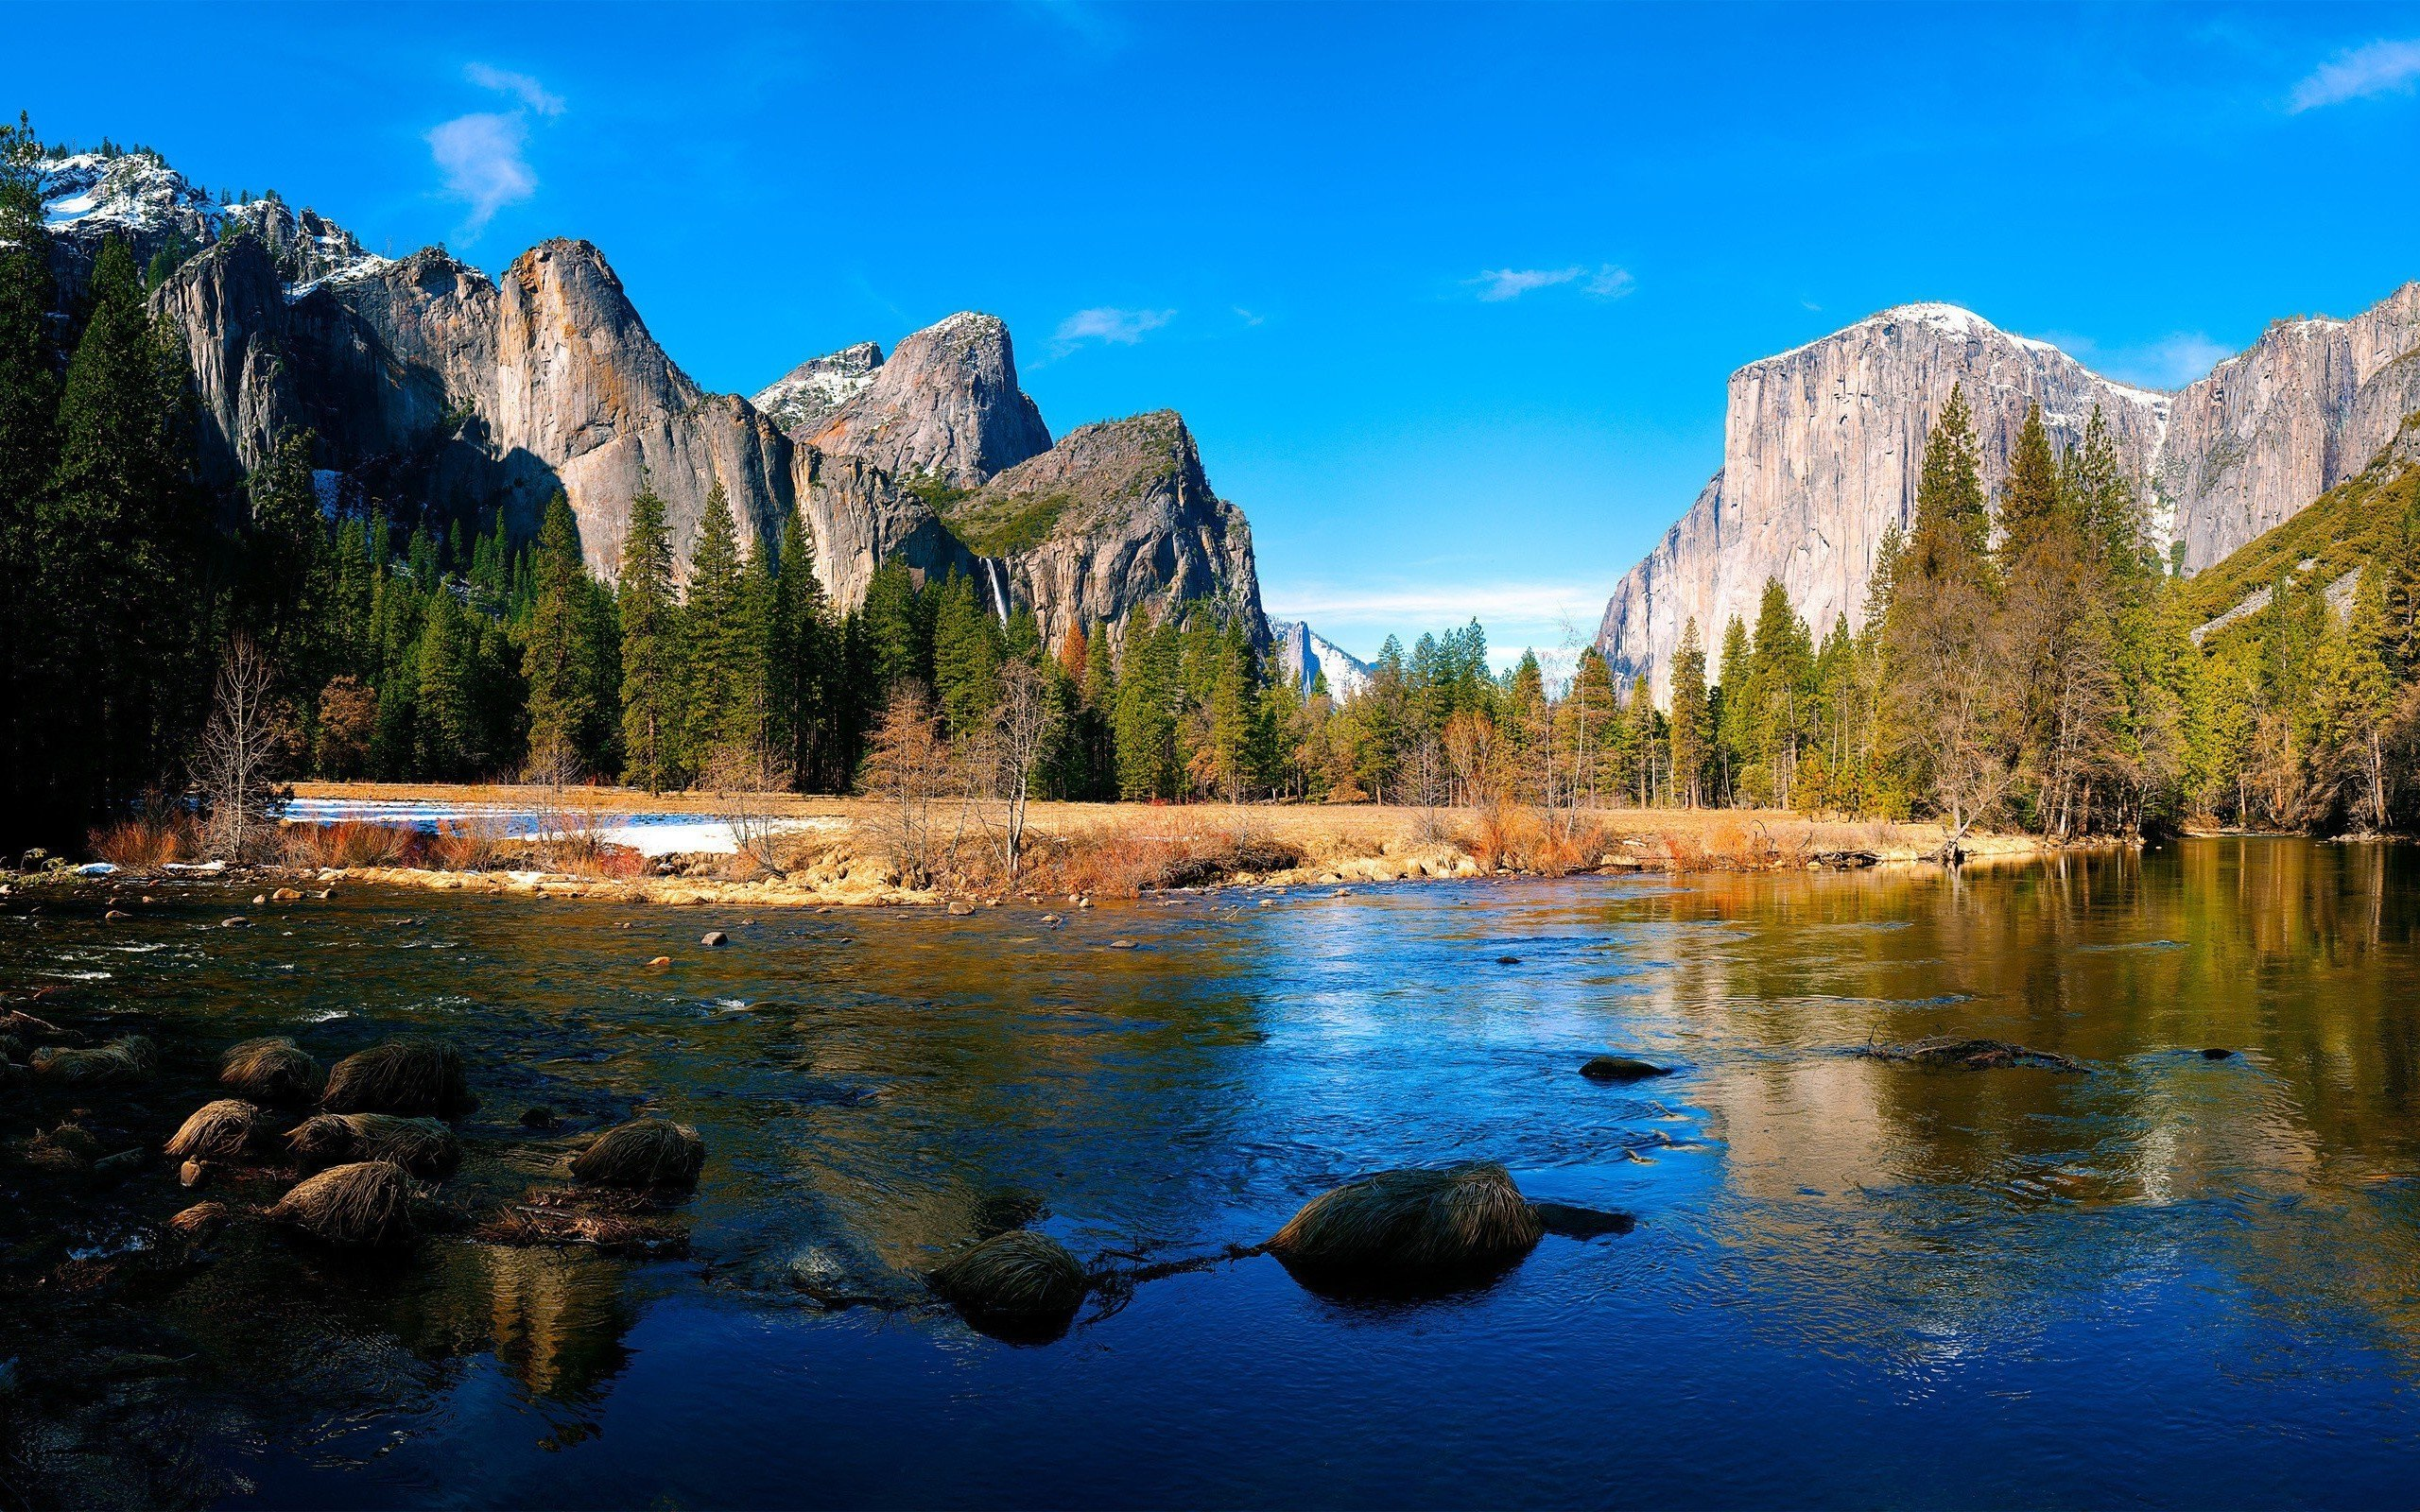 Yosemite 8K Wallpapers - WallpaperSafari